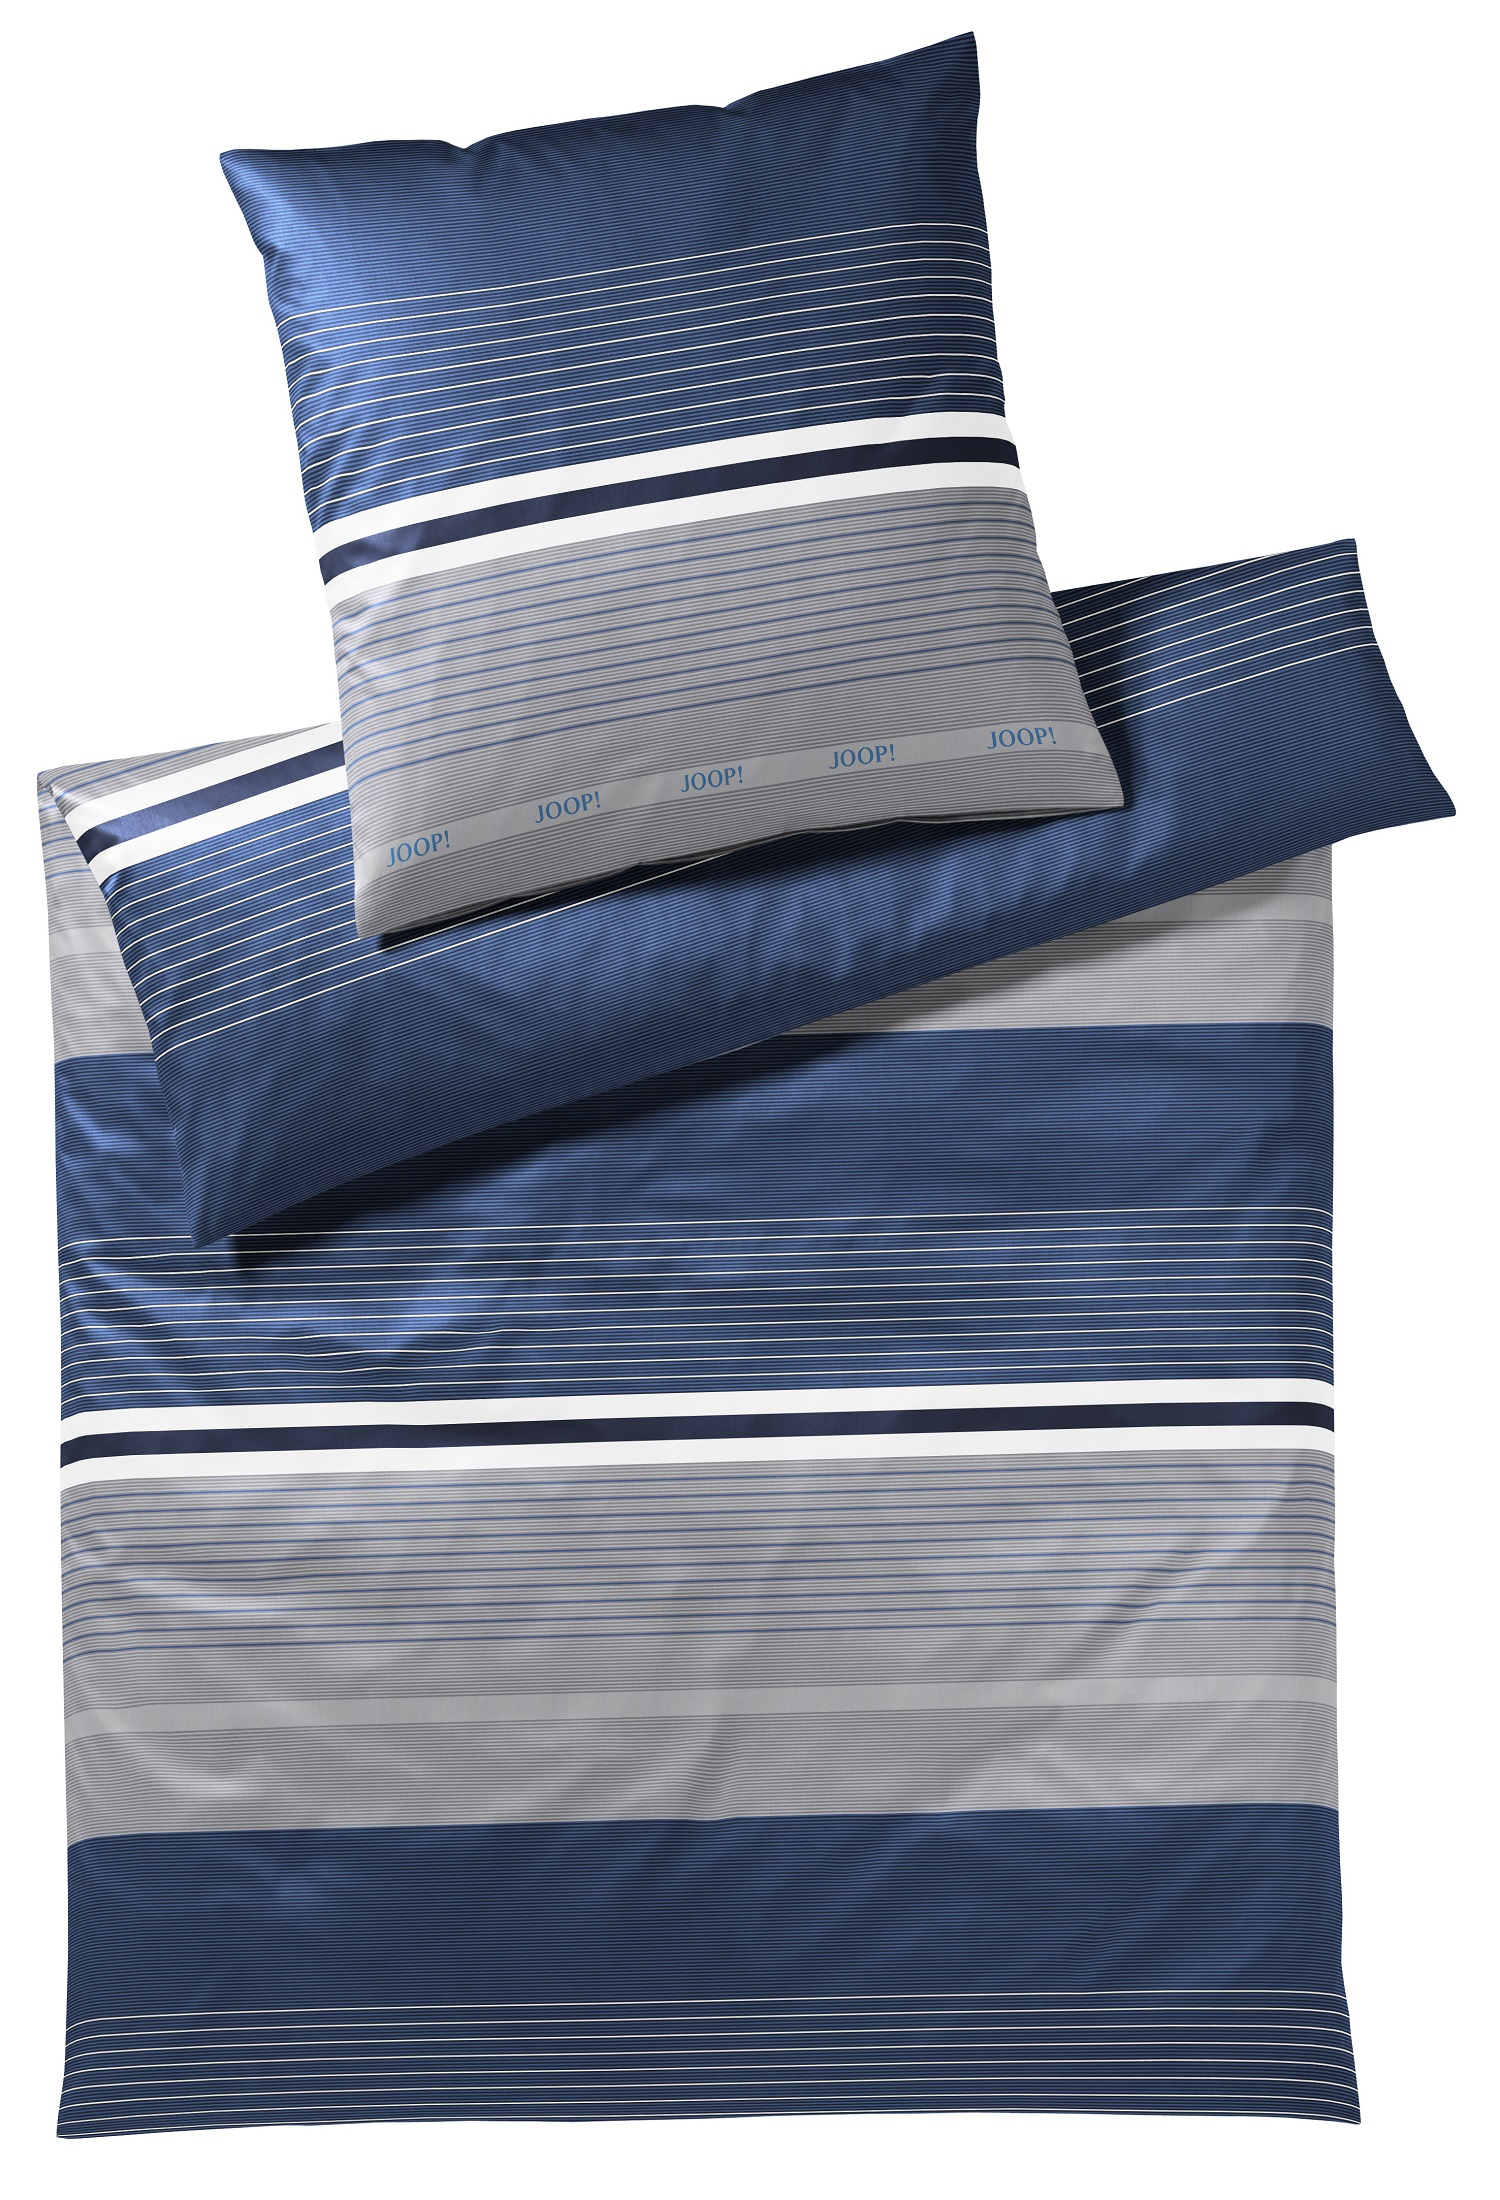 JOOP! Bettwäsche Fit 4091-02 Ocean 155x220 cm Kollektion 2020